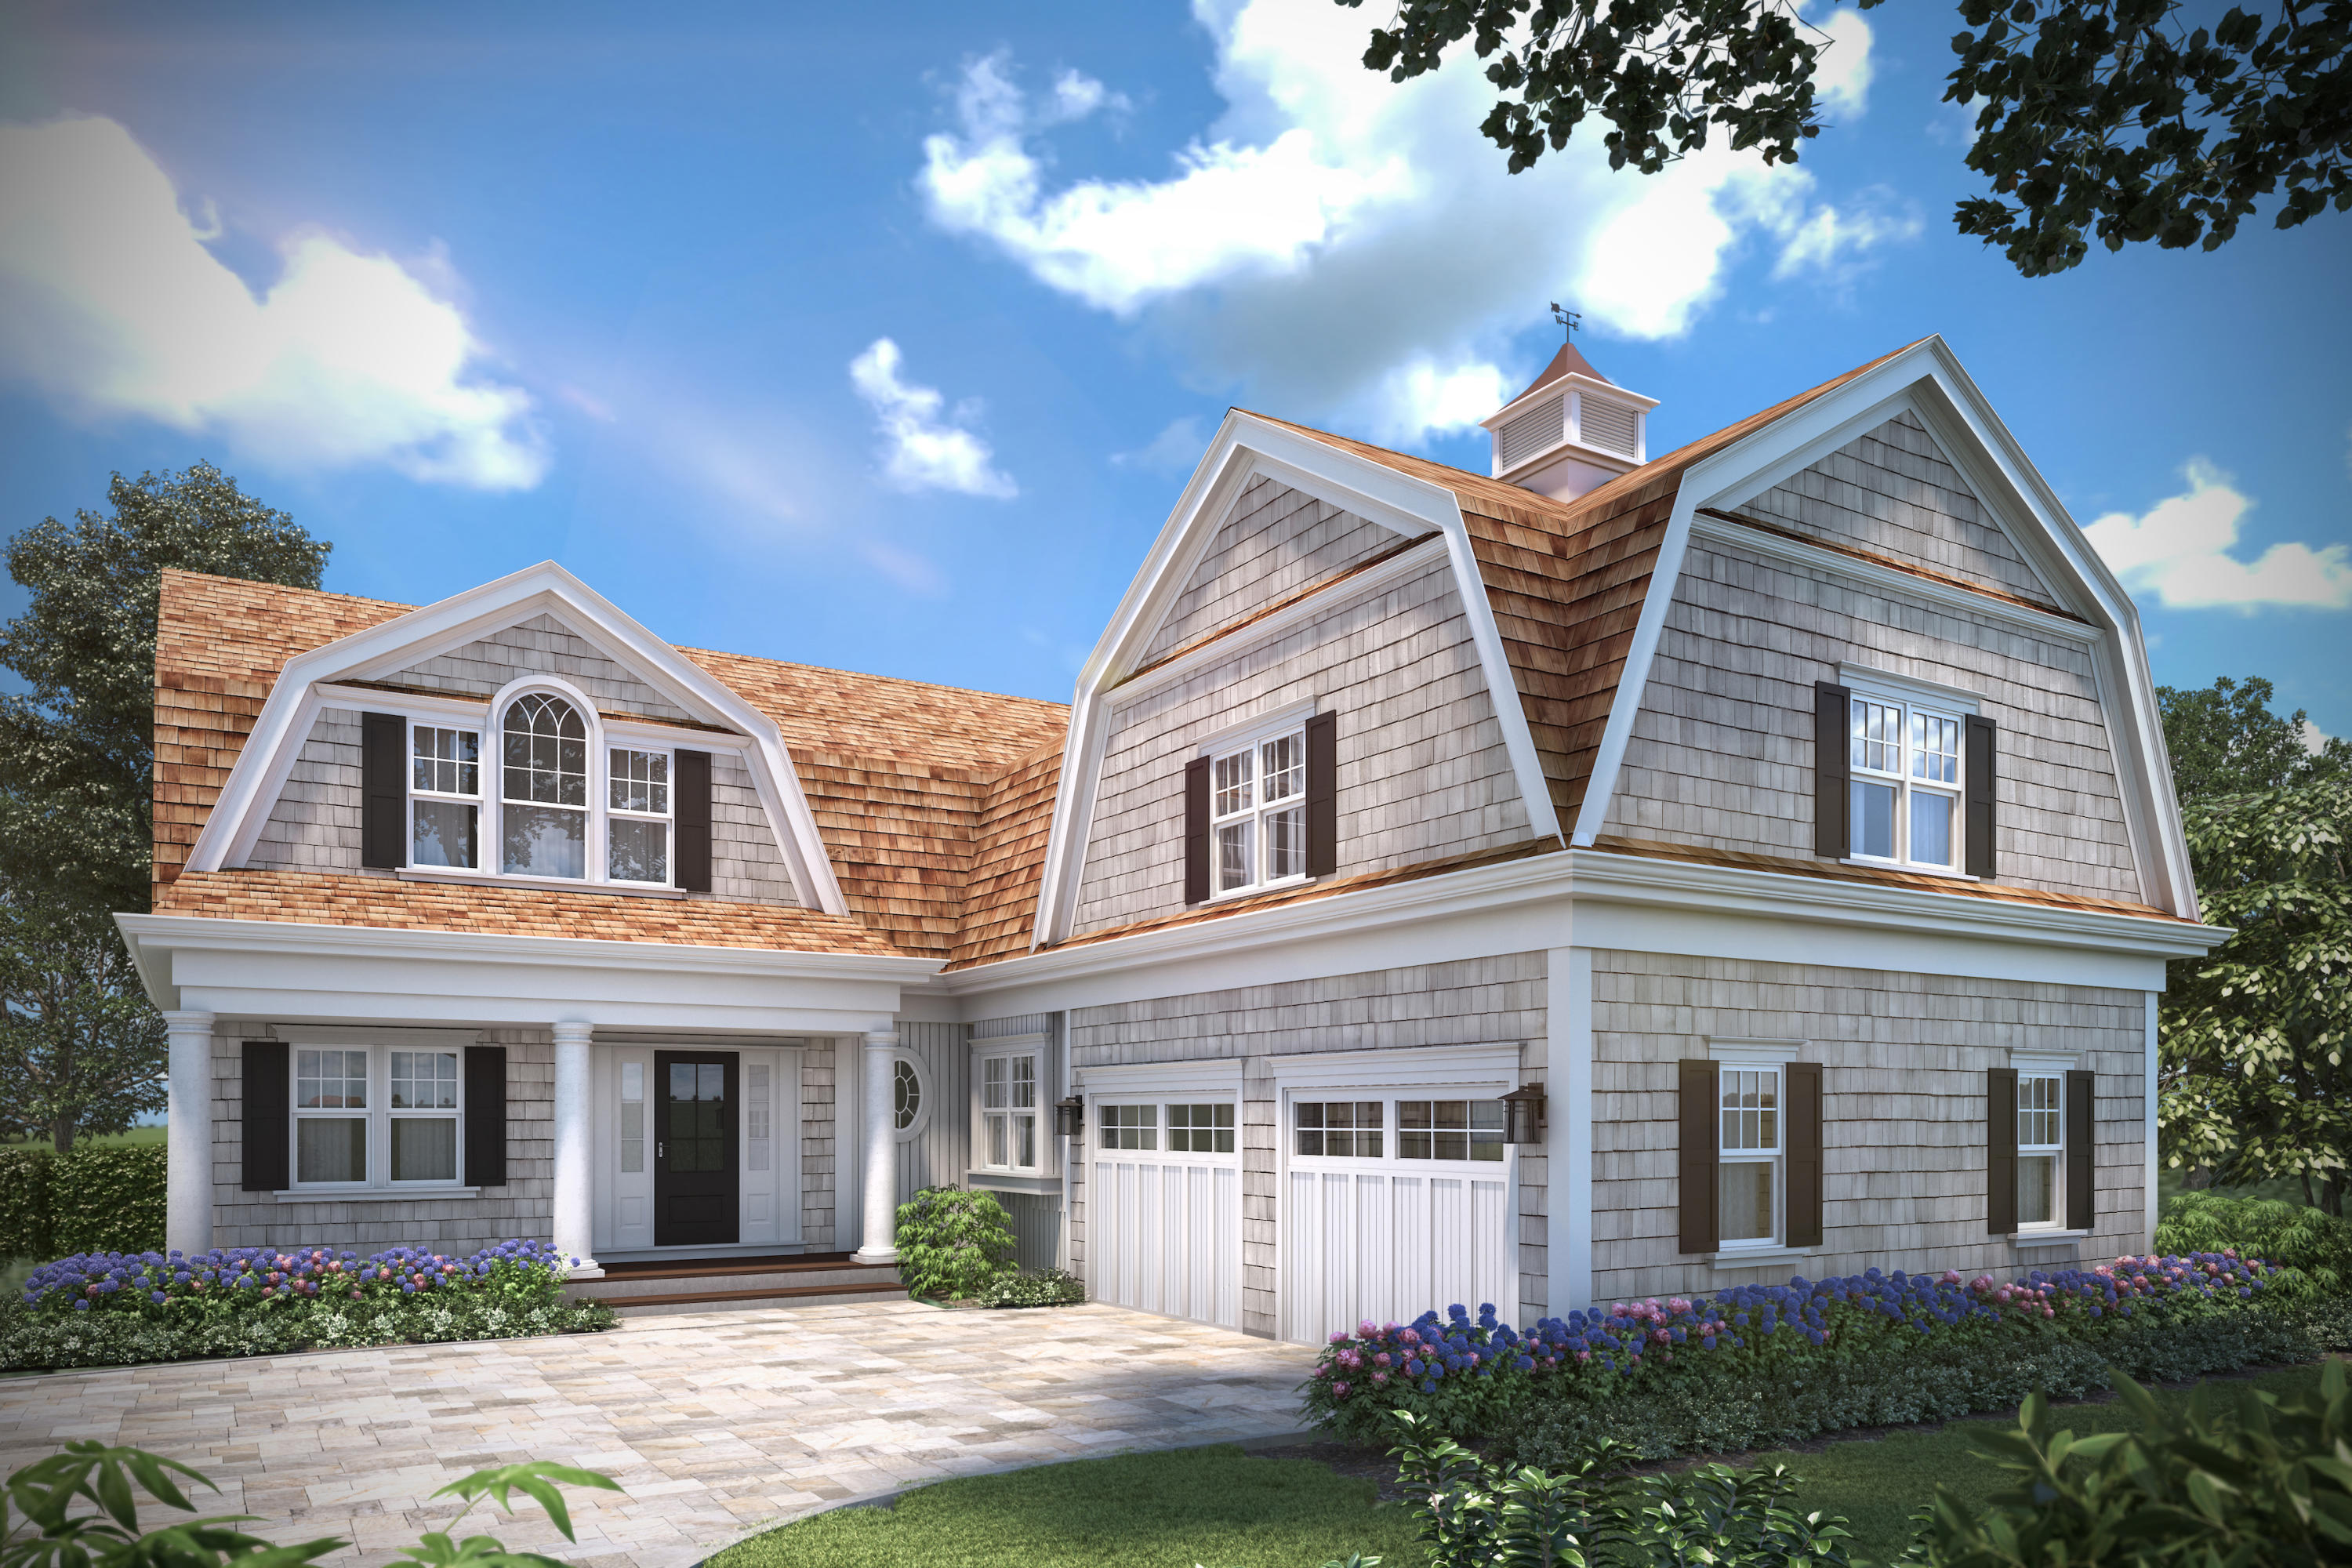 60 Seaview Street, Chatham, MA details